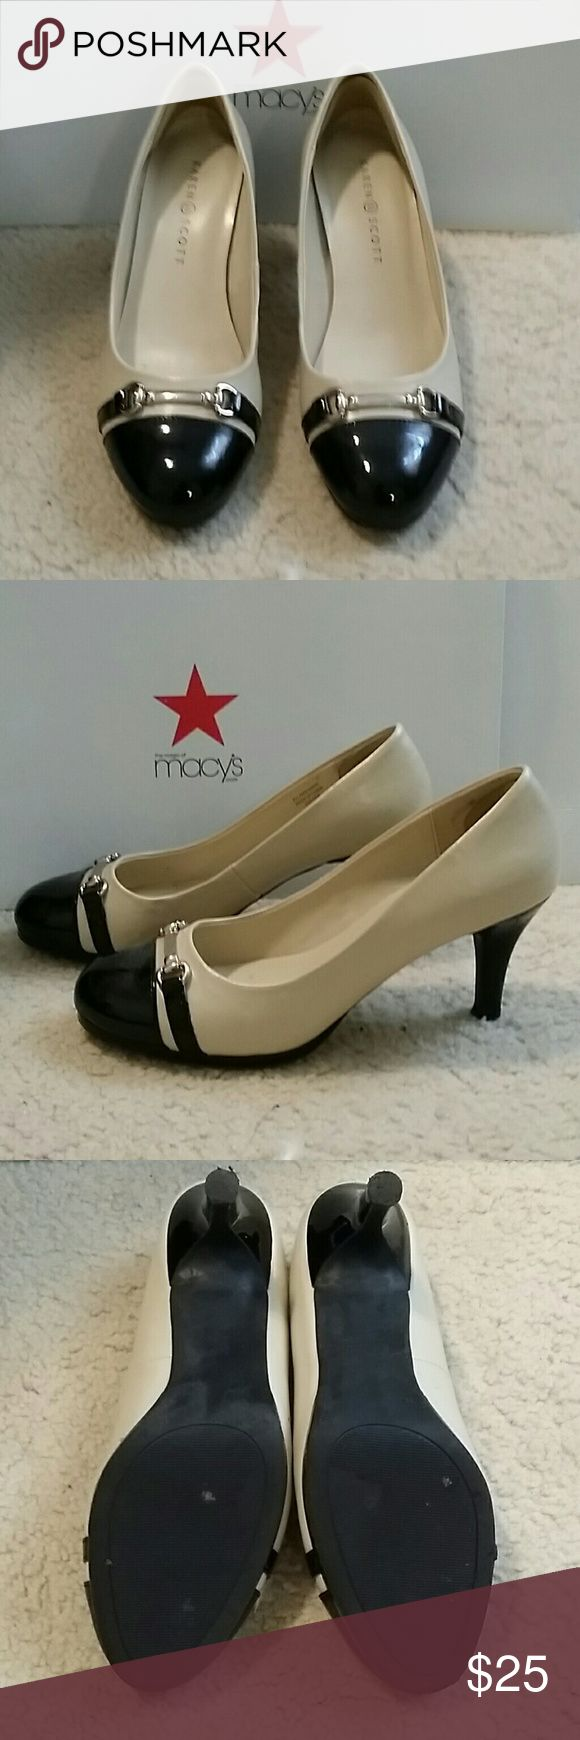 Karen scott cream and black pumps Classy heels for the office in very good condition! Cream and black with a silver buckle accent. Karen Scott Shoes Heels